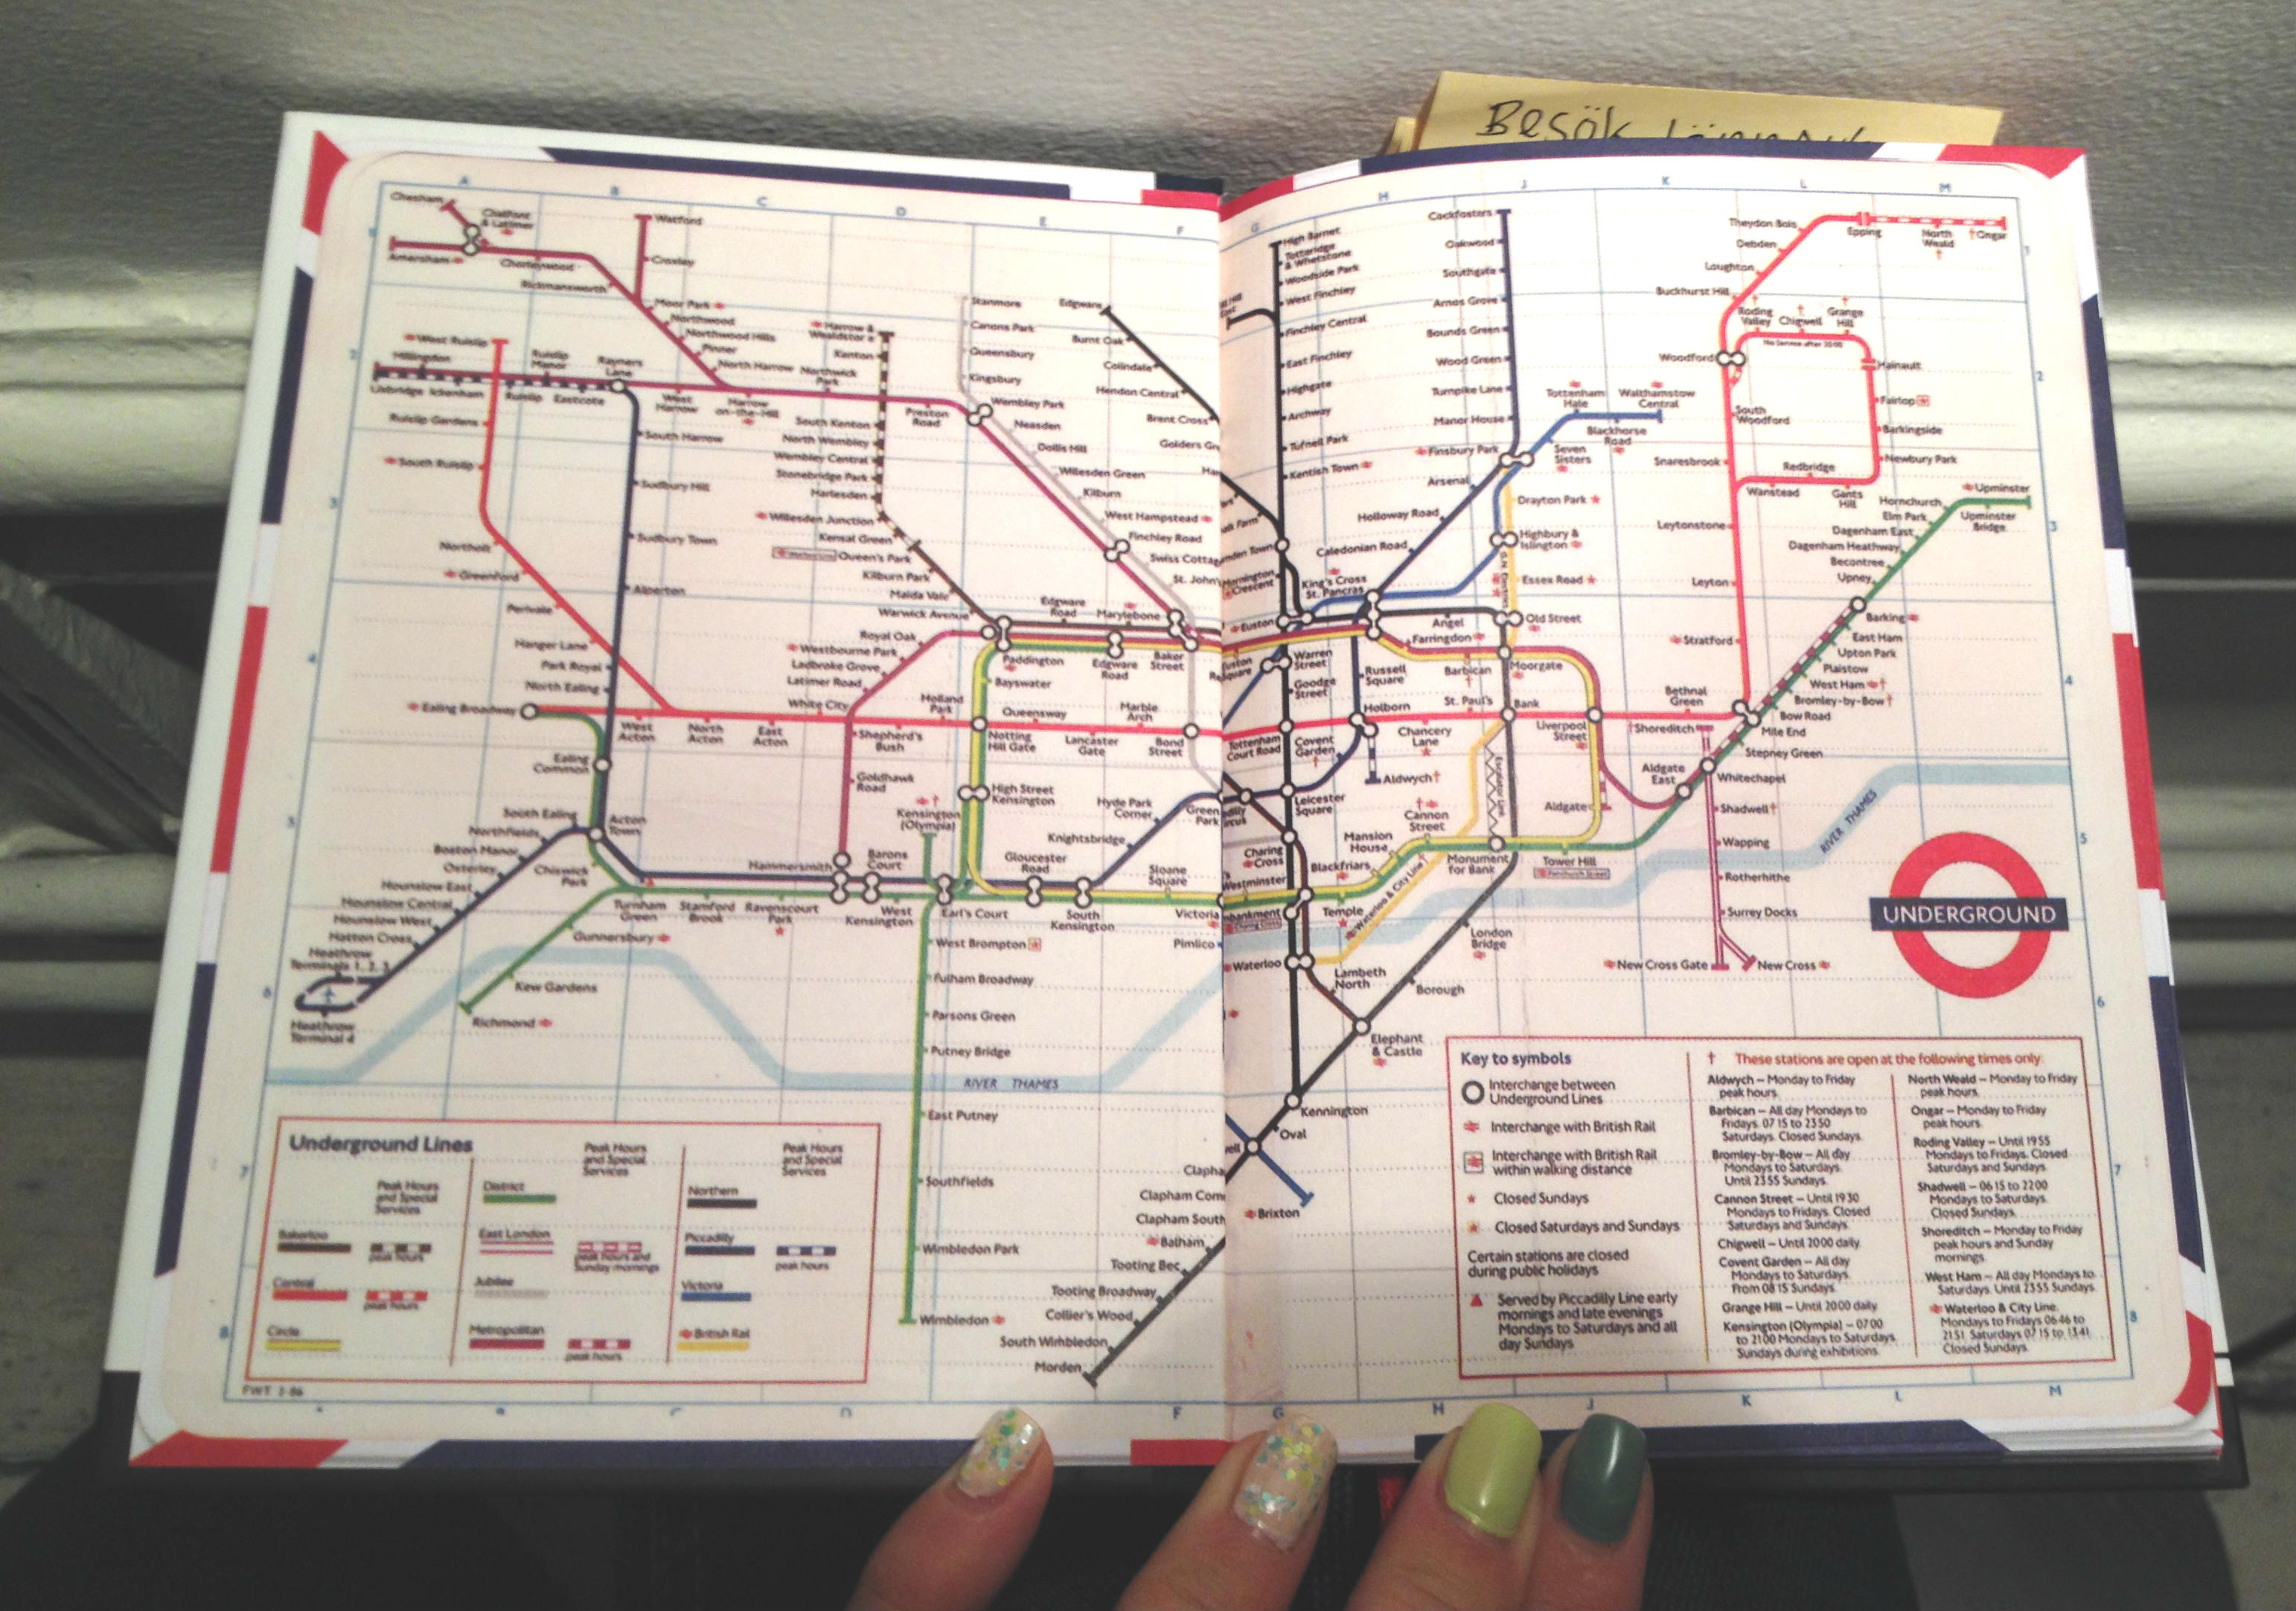 Mind-the-gap-london-guidebok-travelgrip-2